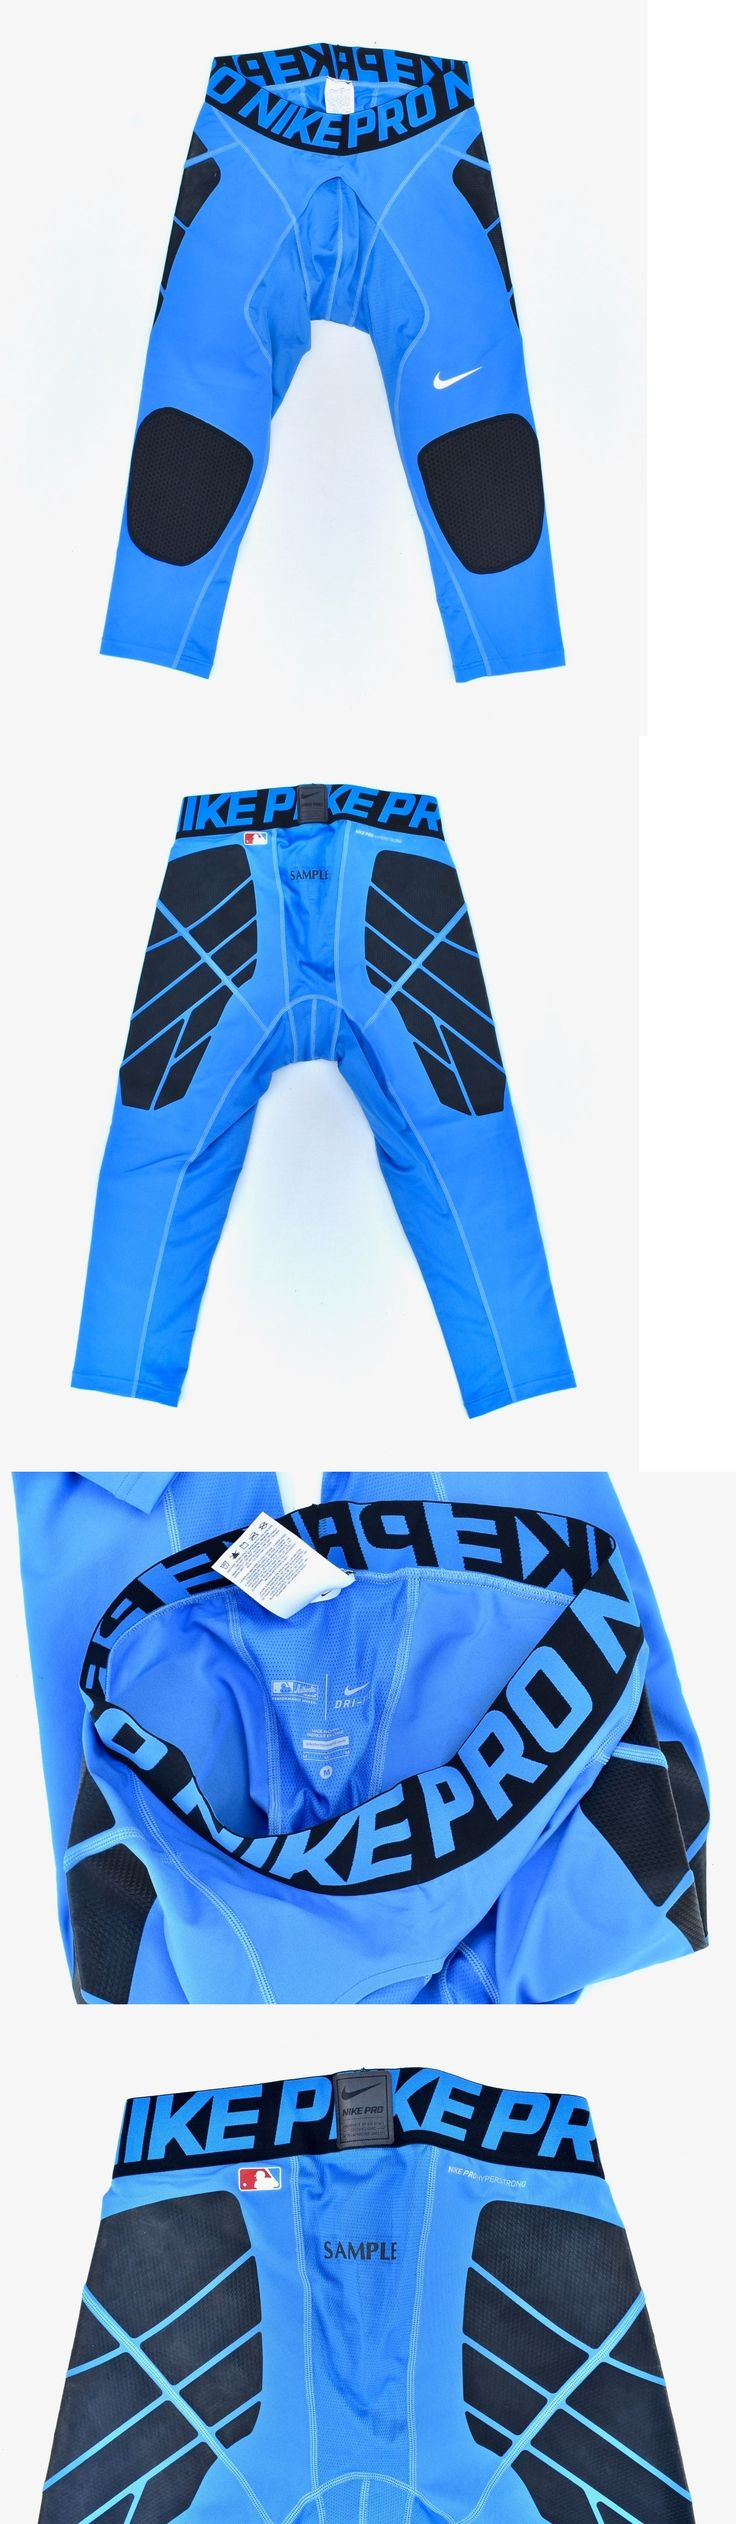 Protective Gear 21224: Nike Pro Combat Hyperstrong Baseball Compression Slider 3 4 Tights New -> BUY IT NOW ONLY: $45 on eBay!